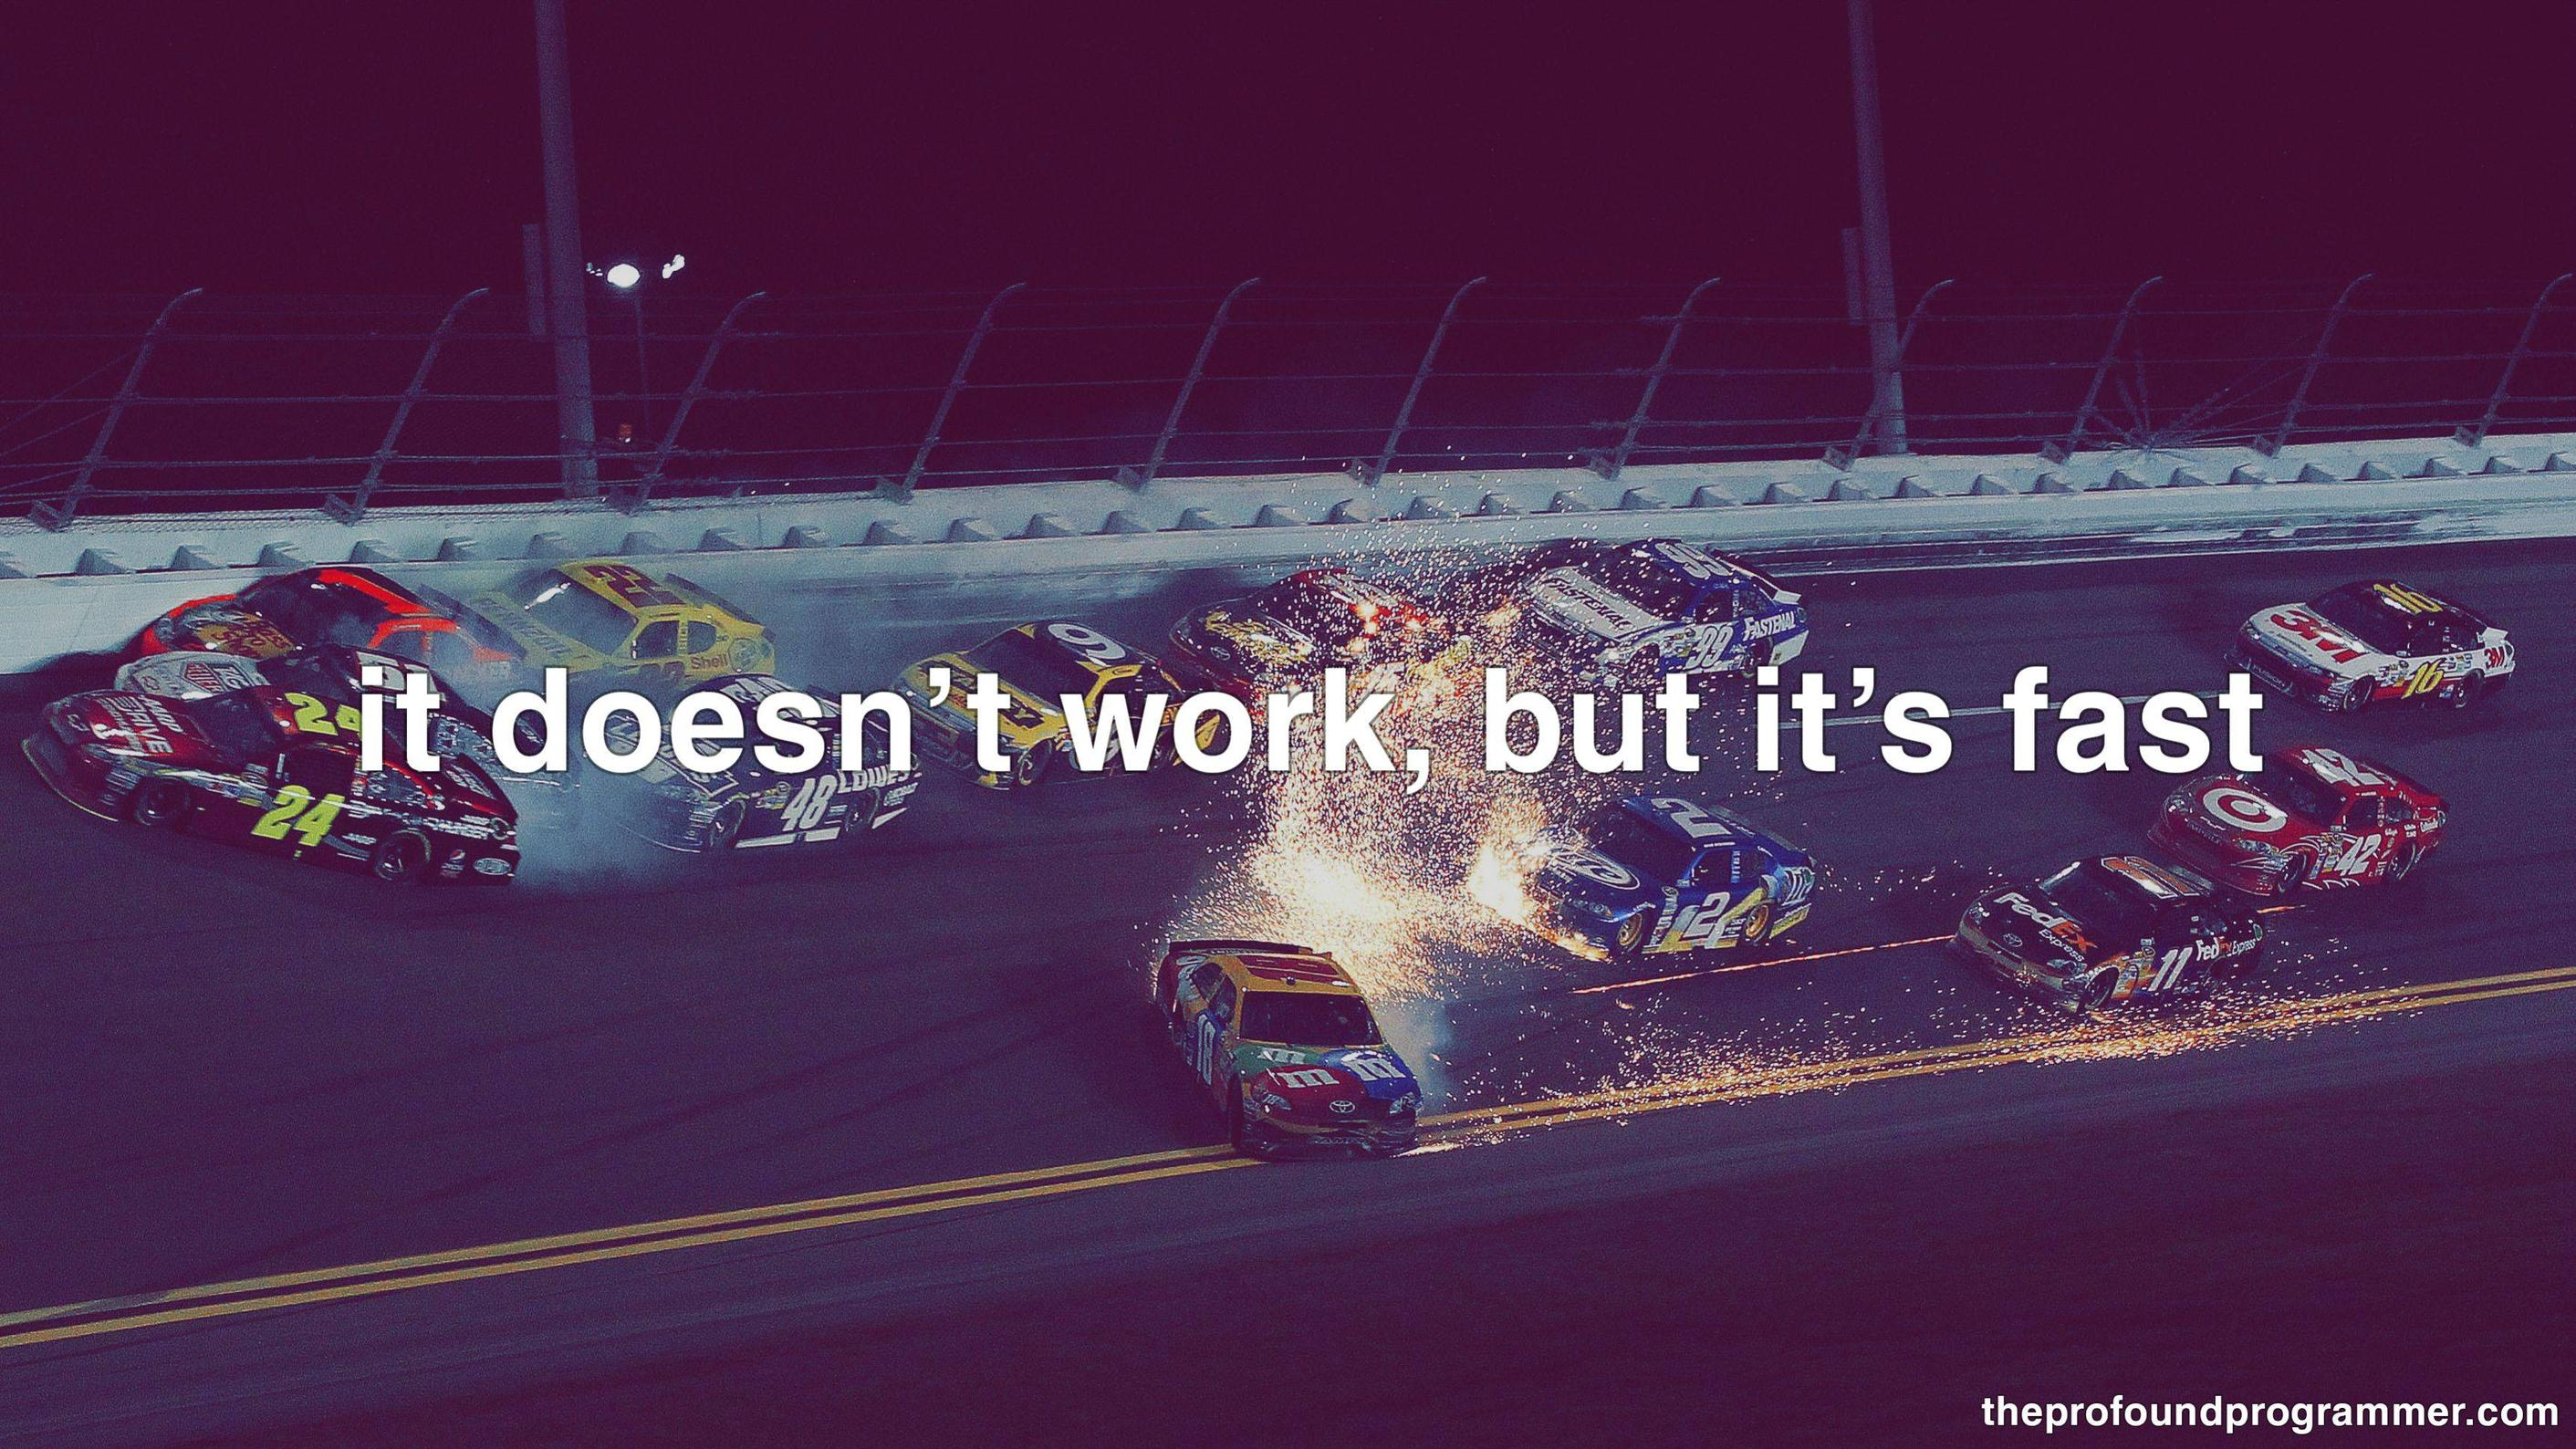 an image of a NASCAR crash with the text 'it doesnt work, but it's fast' superimposed, courtesy of theprofoundprogrammer.com